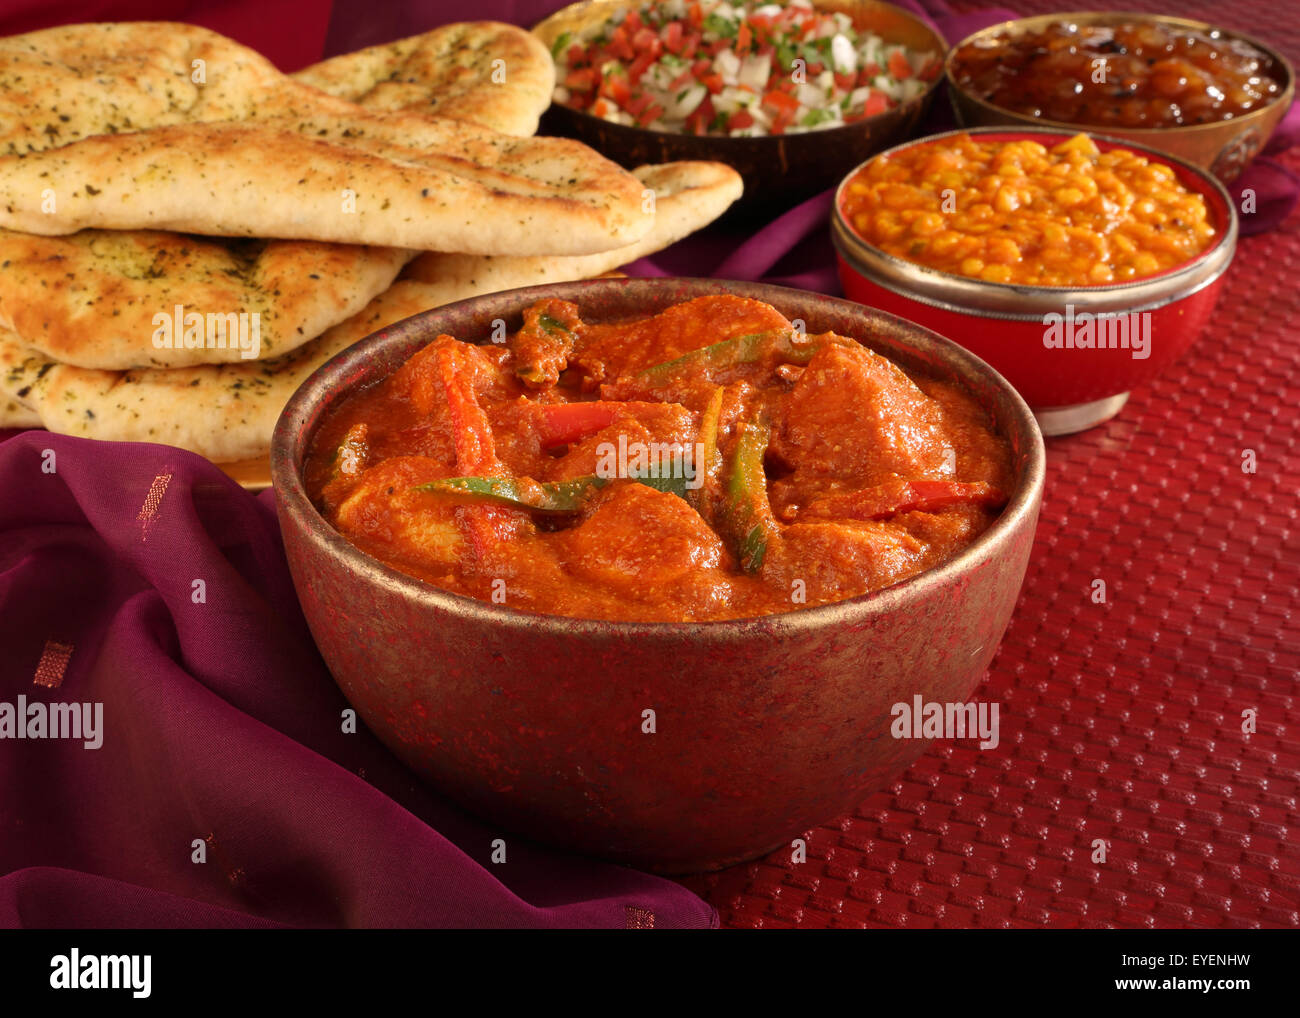 Indian chicken jalfrezi curry meal stock photo 85761477 alamy indian chicken jalfrezi curry meal forumfinder Choice Image